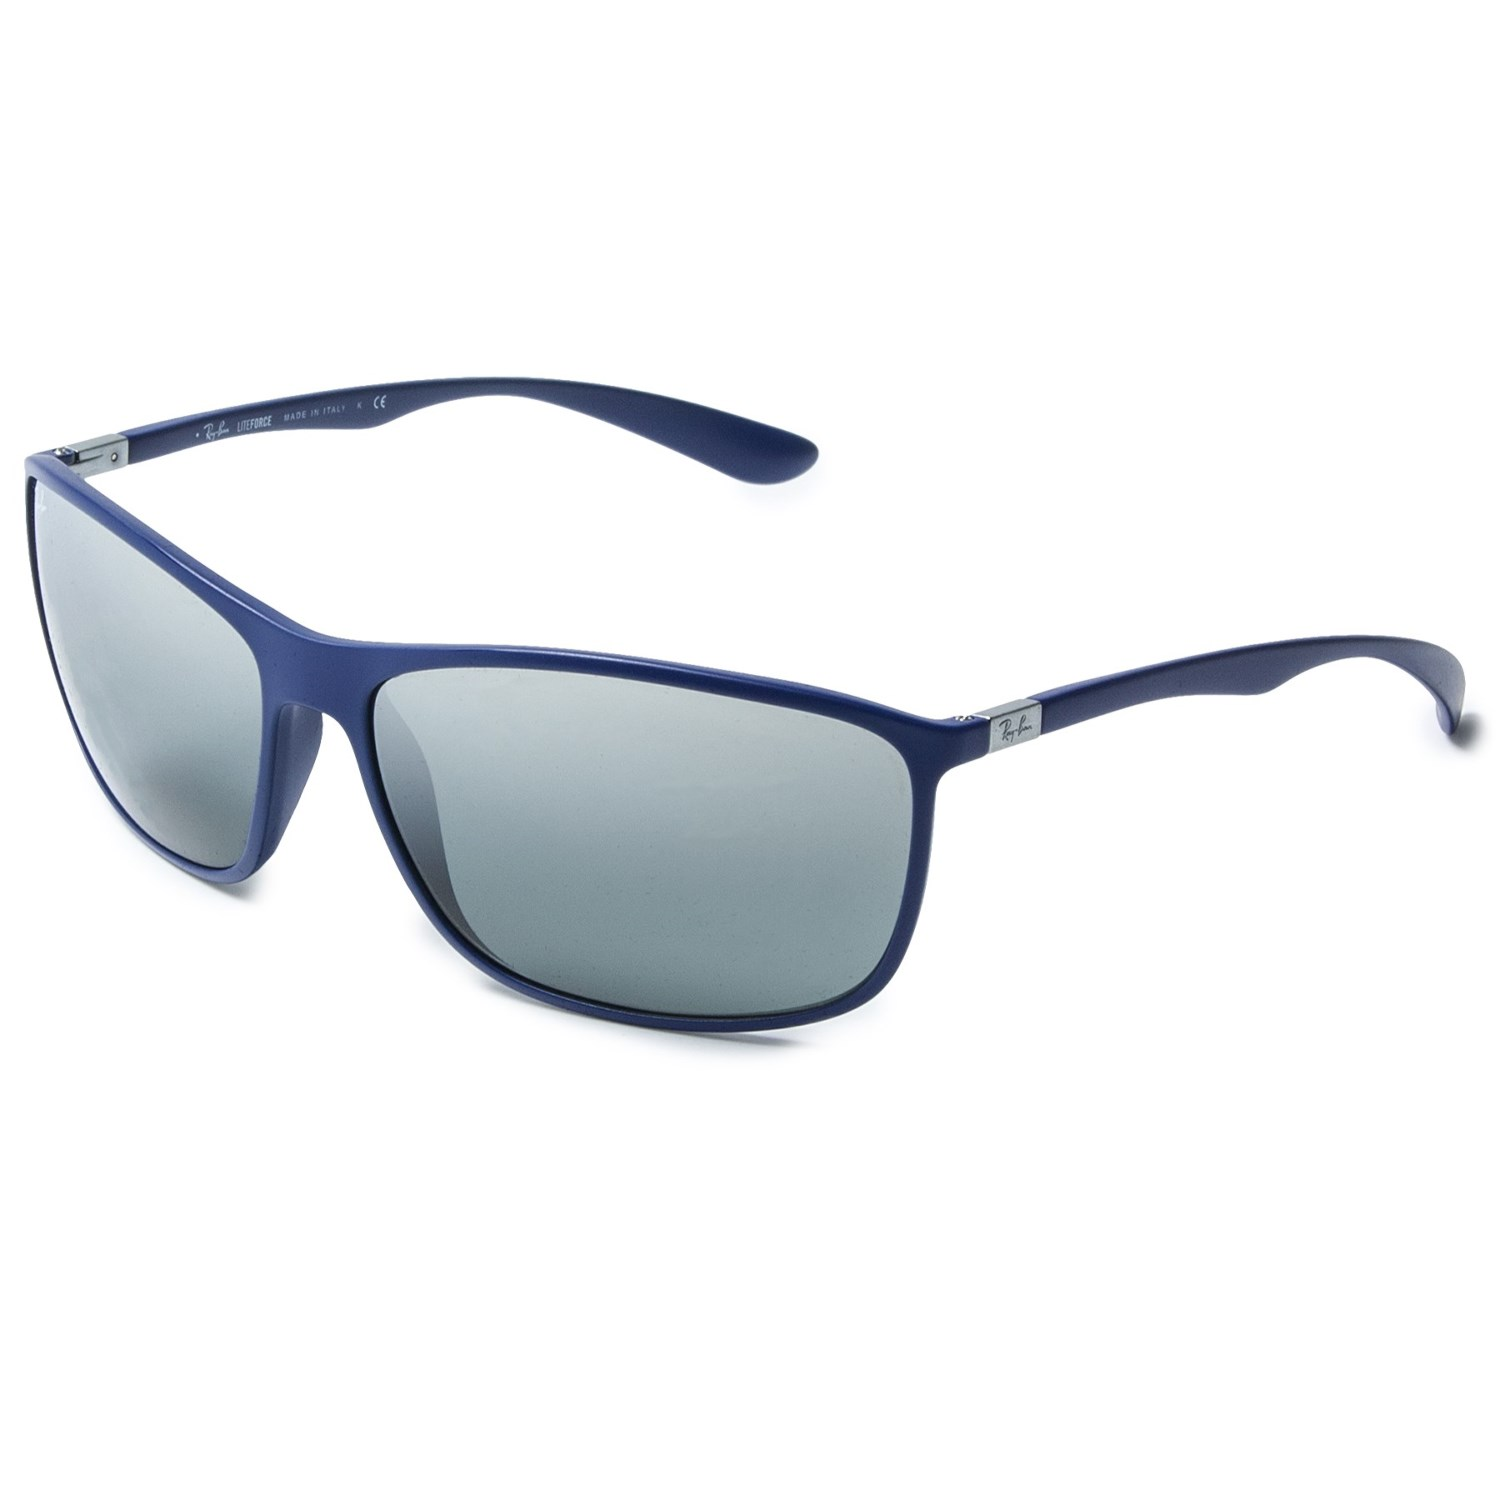 a37b969a829 Sport Glasses Ray Ban Amazon On Line